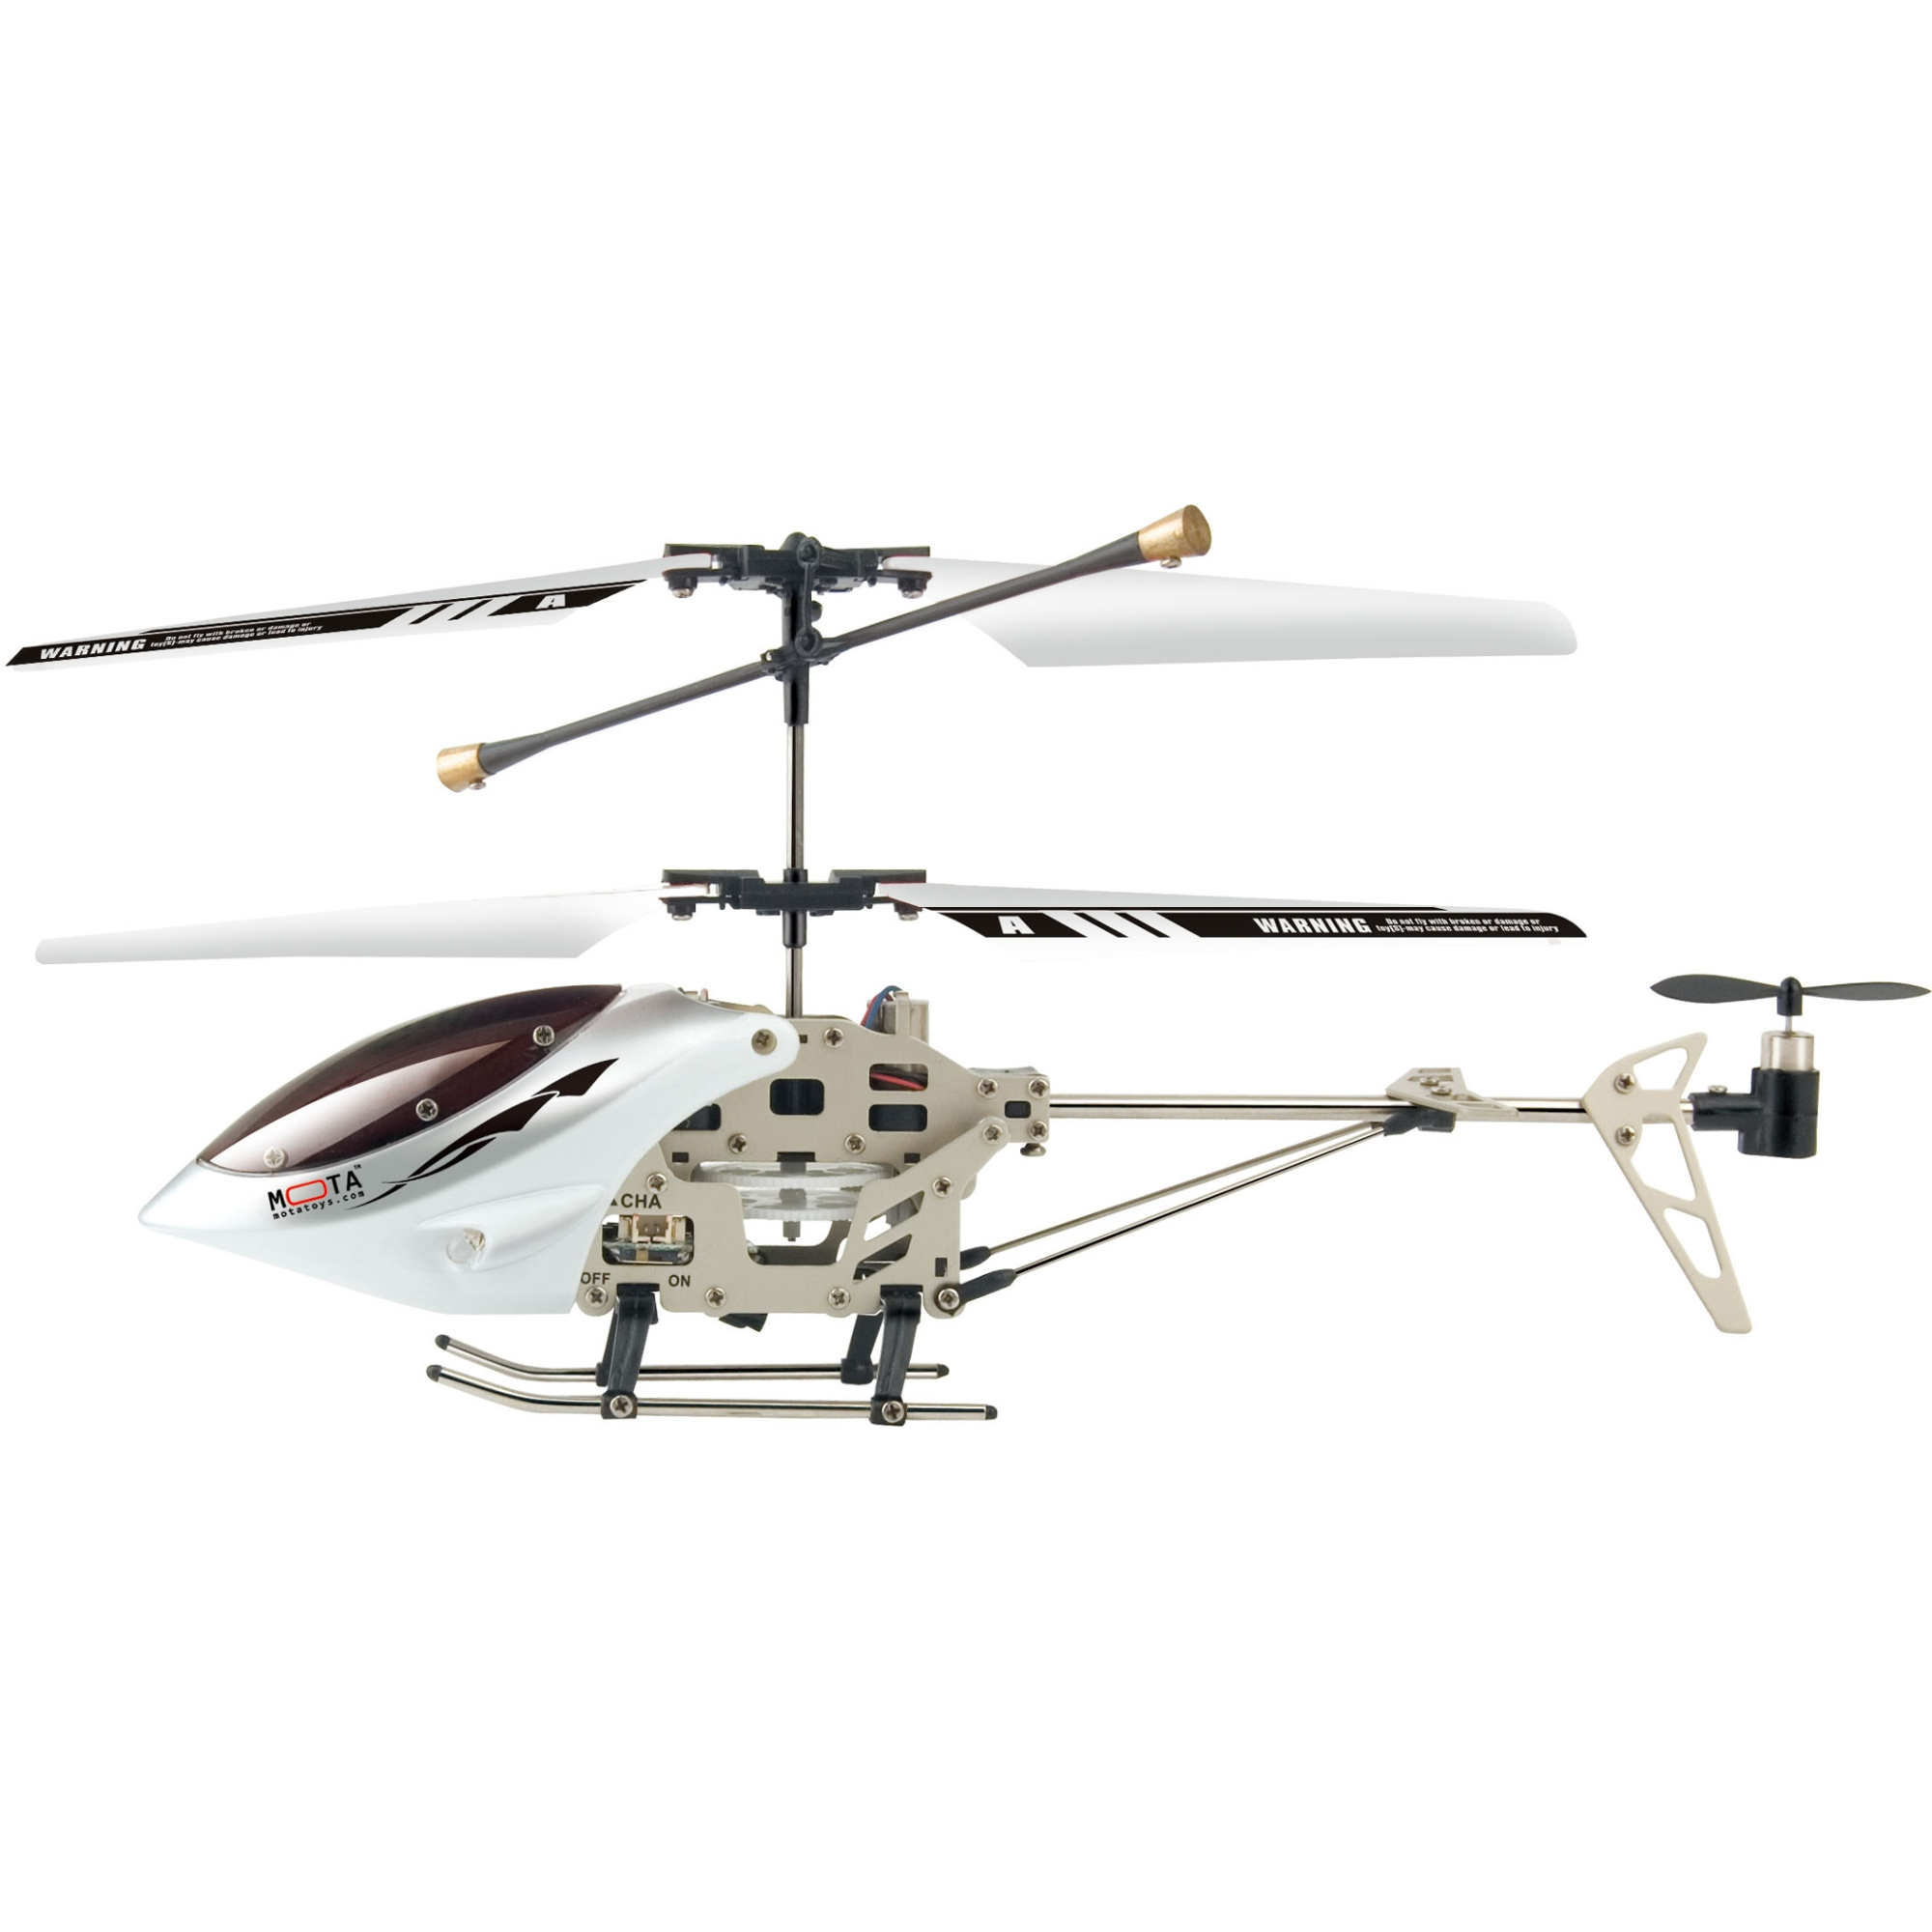 MOTA 6036 iPhone/iPad/iPod Remote Controlled RC Helicopter (Extreme Edition)